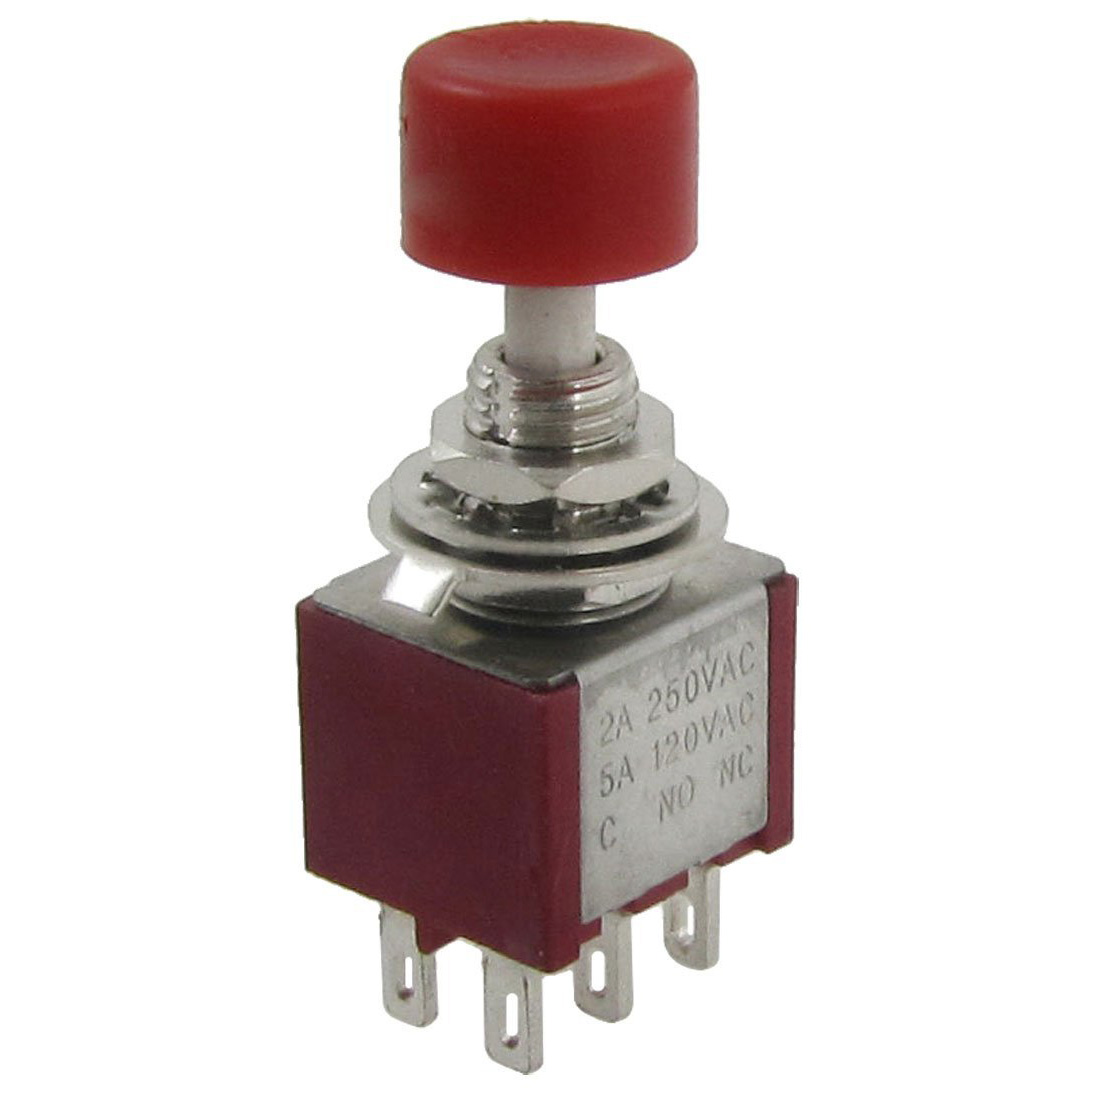 (Top sell)2 Pcs AC 250V 2A 120V 5A DPDT 2NO 2NC Momentary Push Button Switch 16mm switch automatic reset square indicator 5a 220vac dpdt 2a 2b with led k16 282 dip8 top red colour new and original